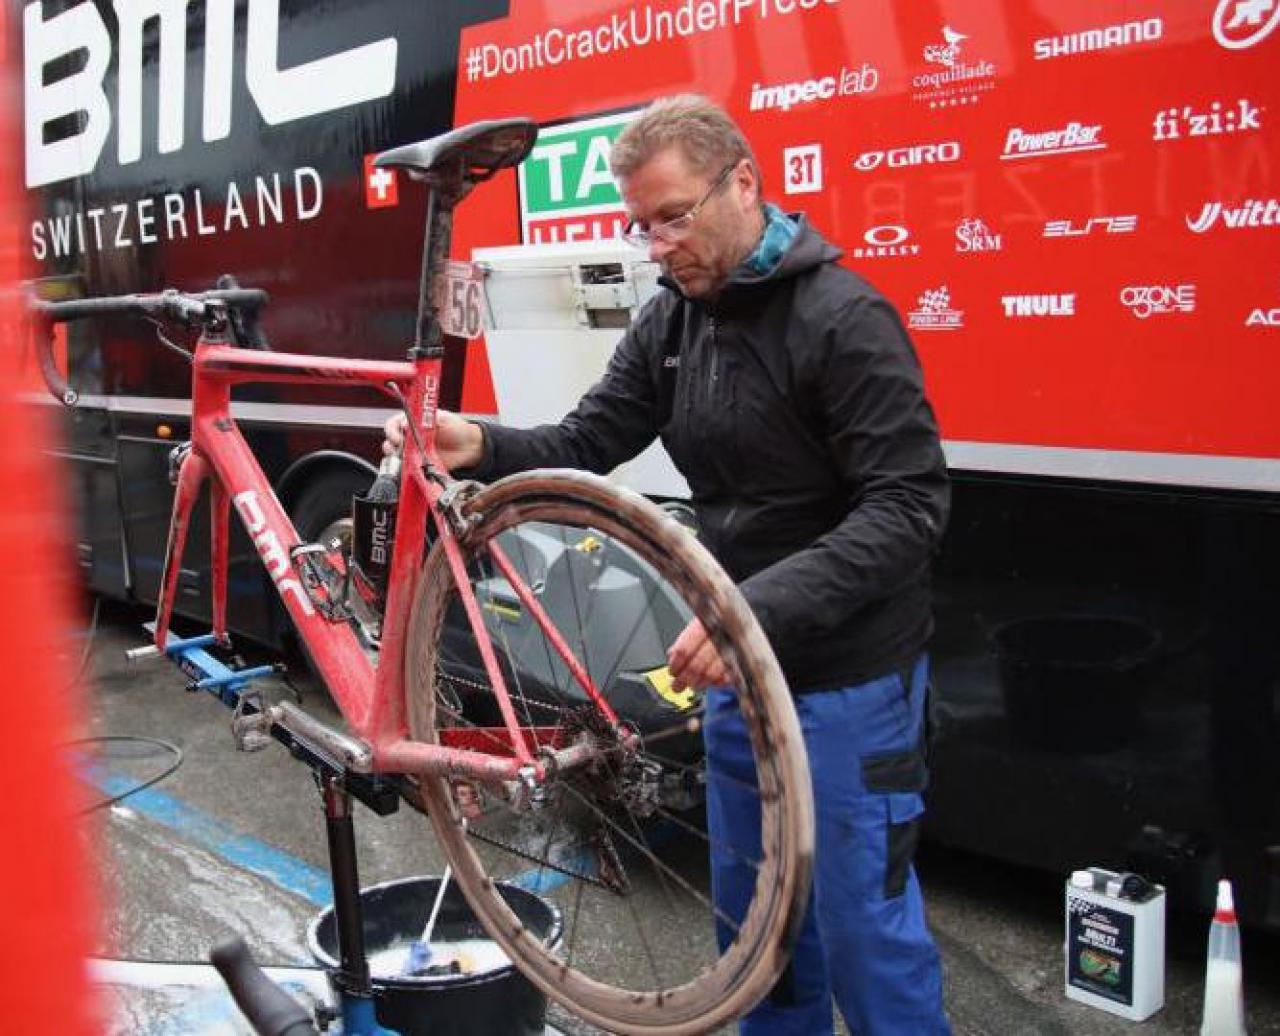 How to clean your bike - from a quick lick to a full makeover